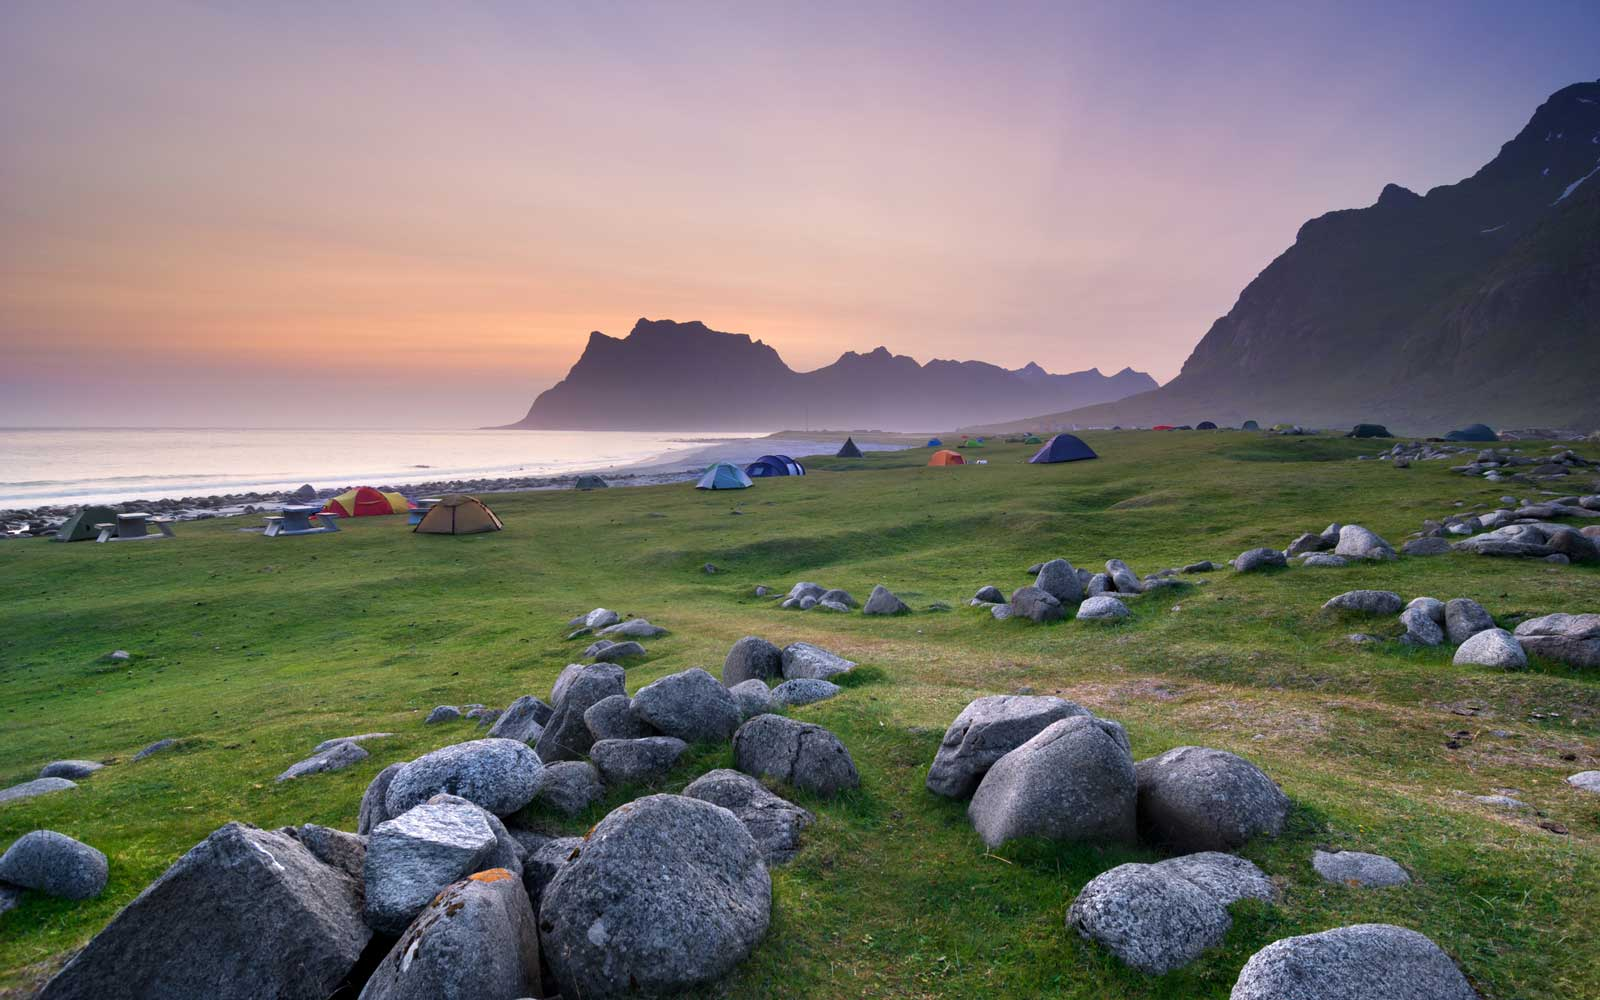 Midnight sun illuminates sky over Uttakleiv Beach, Vestvagoy, Lofoten Islands, Norway